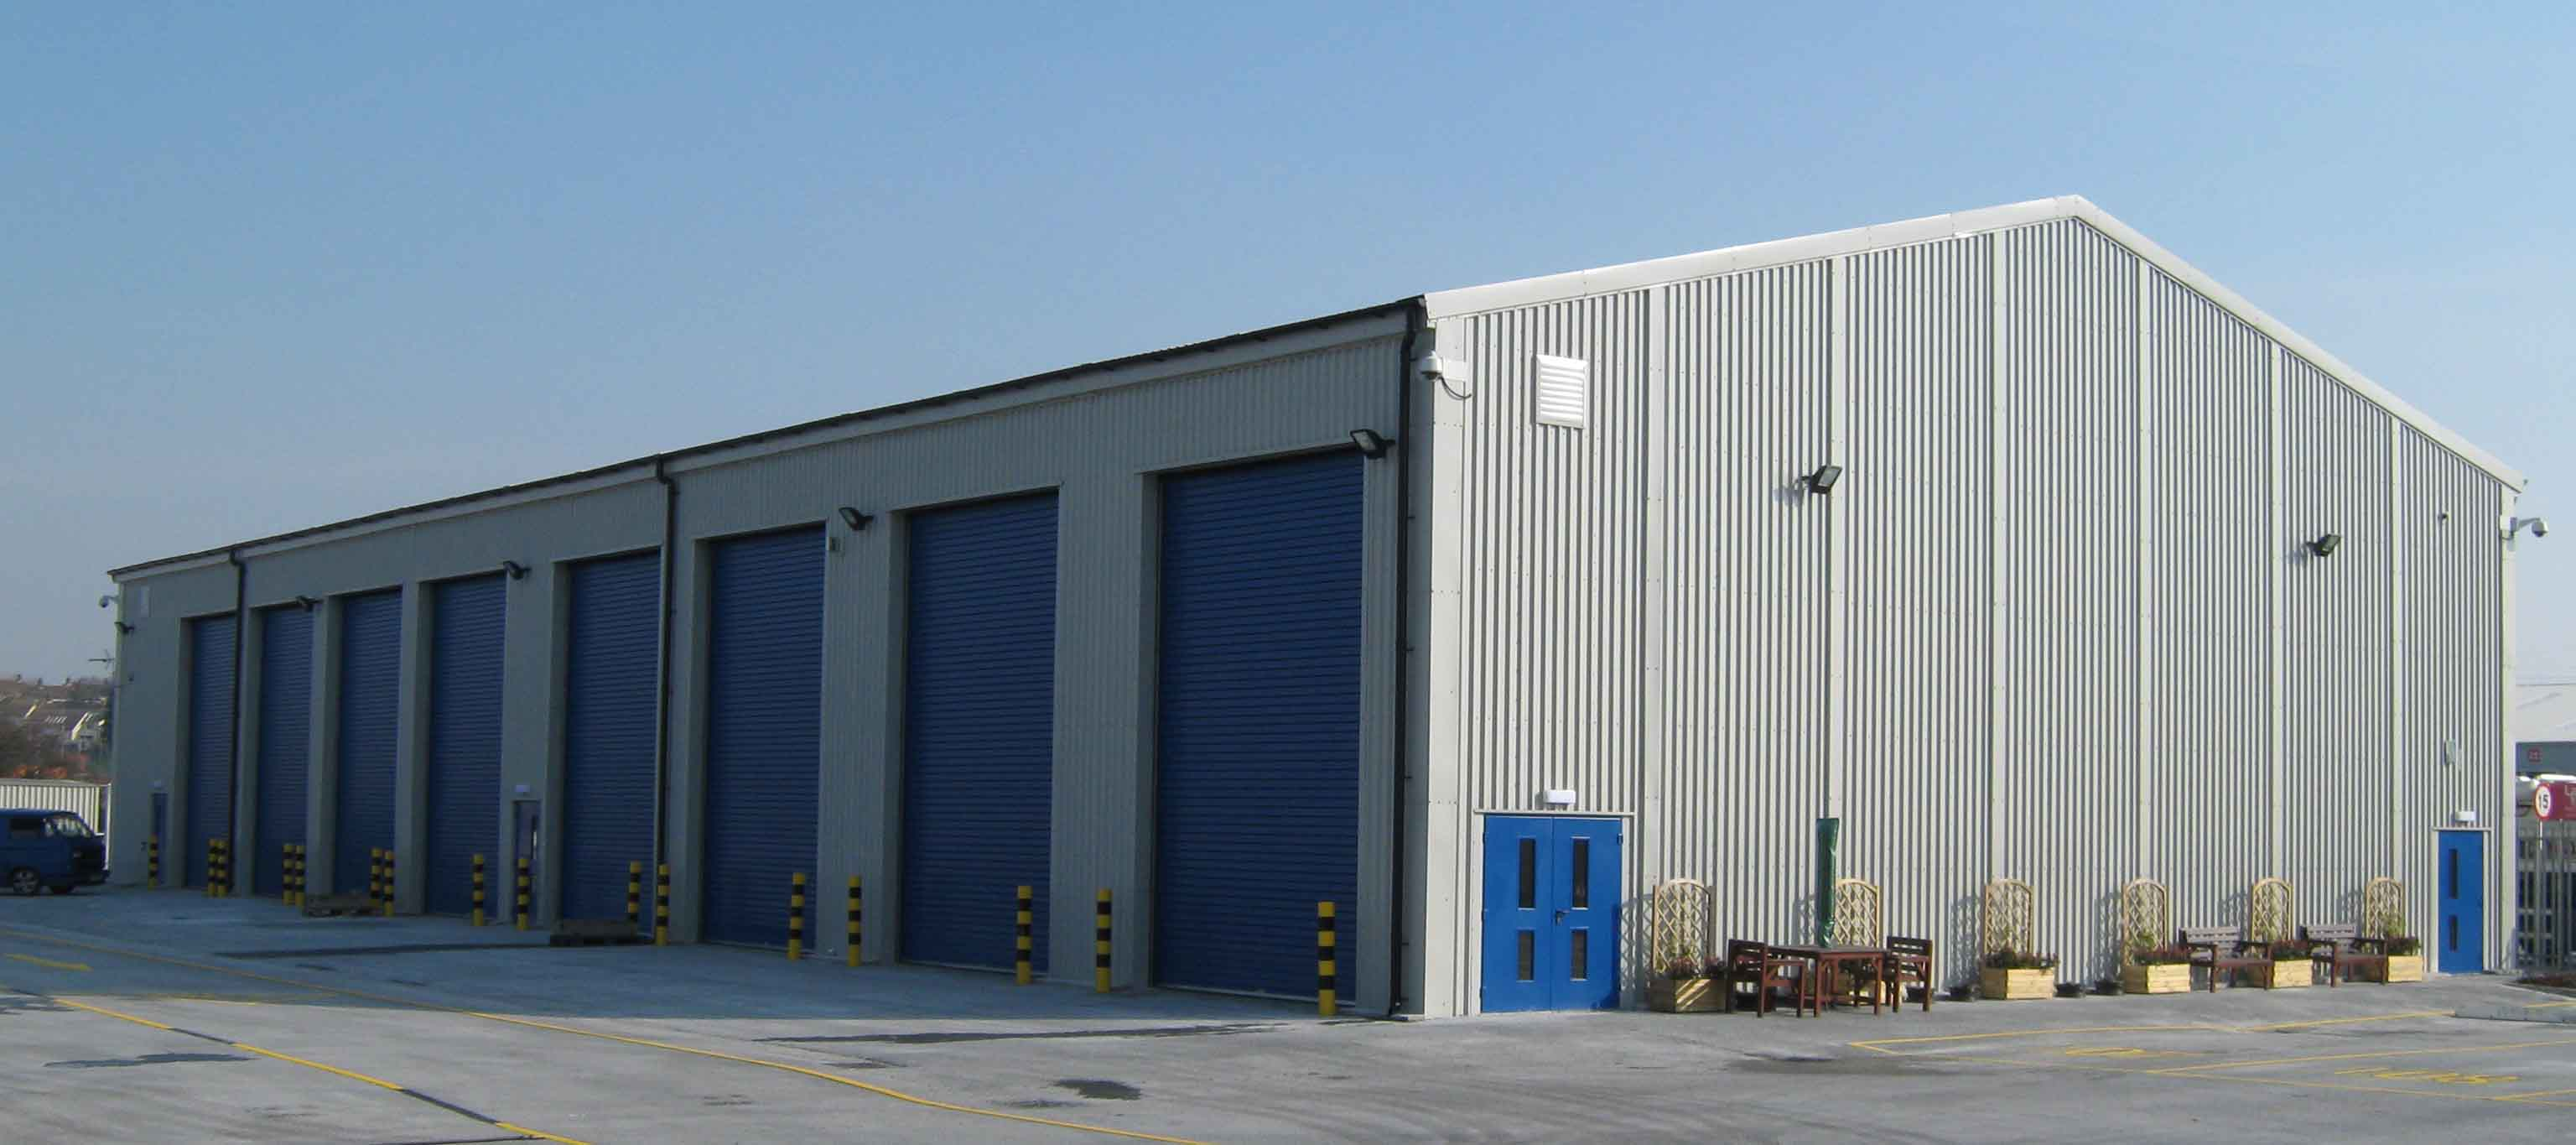 ROYAL MAIL BUILDING 8 BAYS